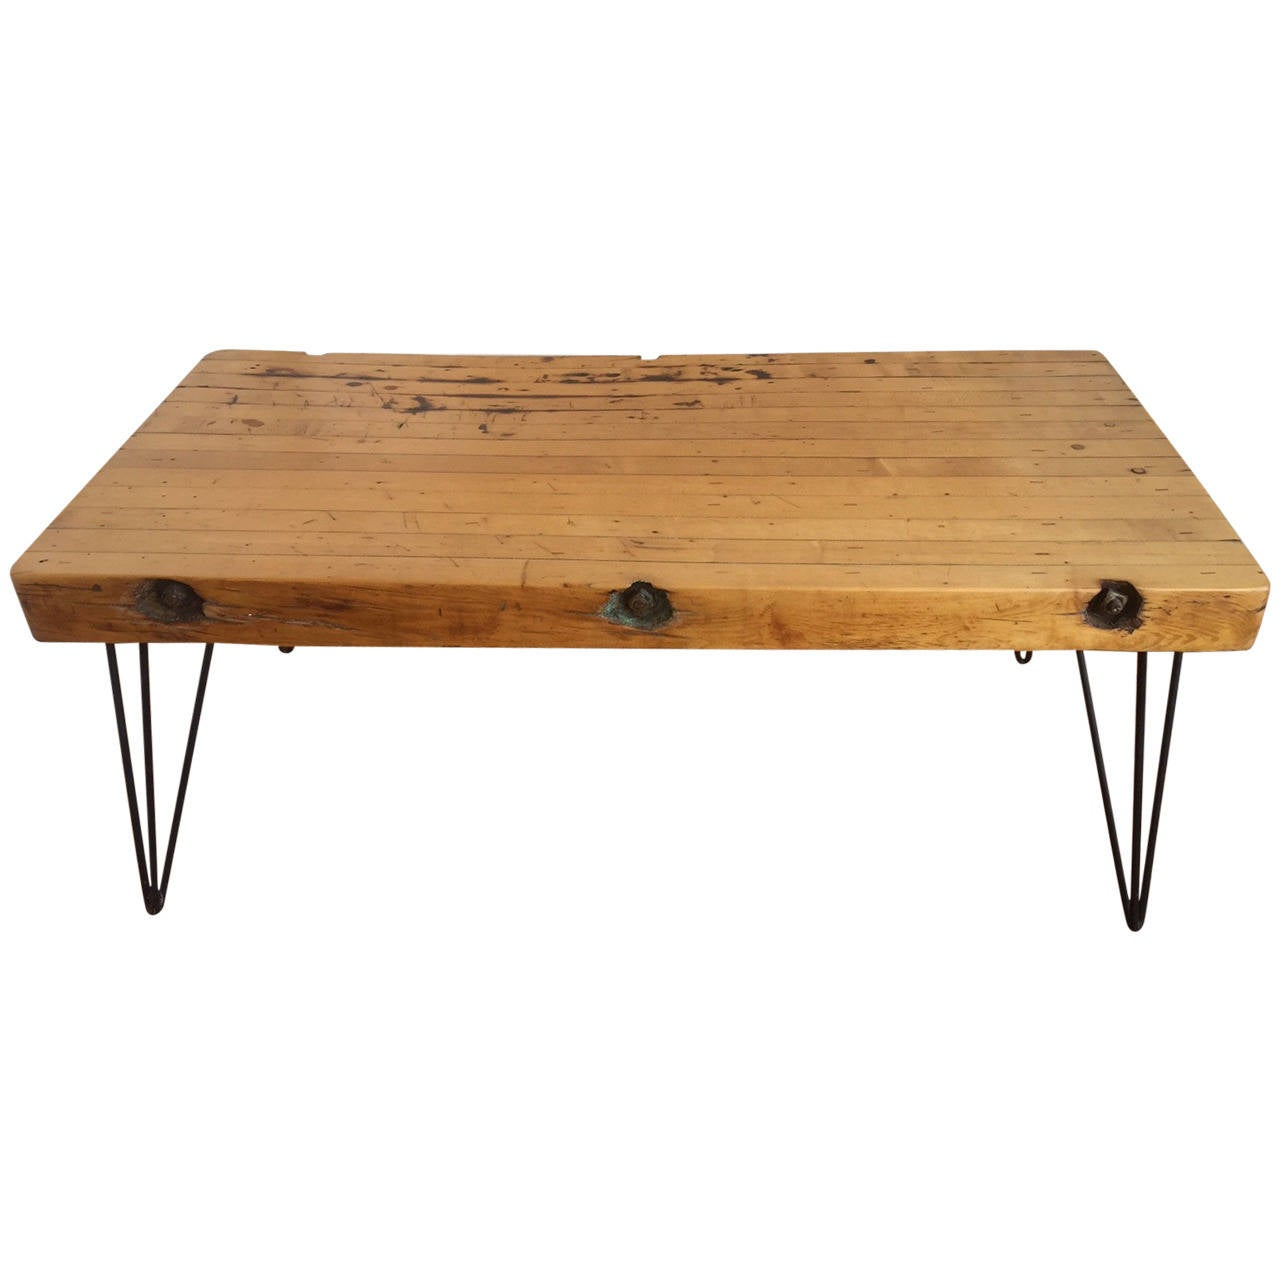 Handmade reclaimed butcher block rustic coffee table at 1stdibs Unique rustic coffee tables